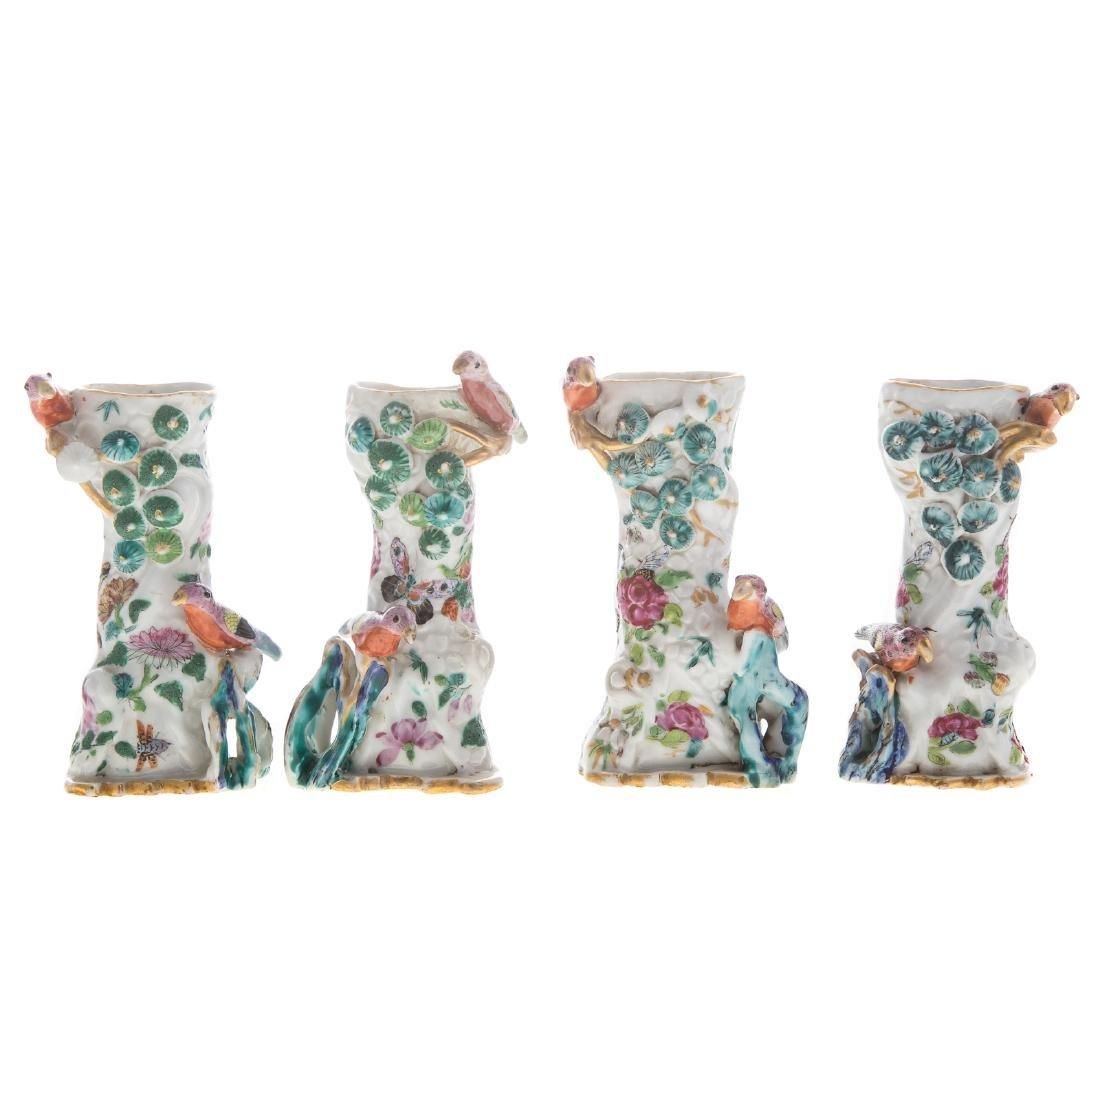 Rare set four Chinese Export bud table vases